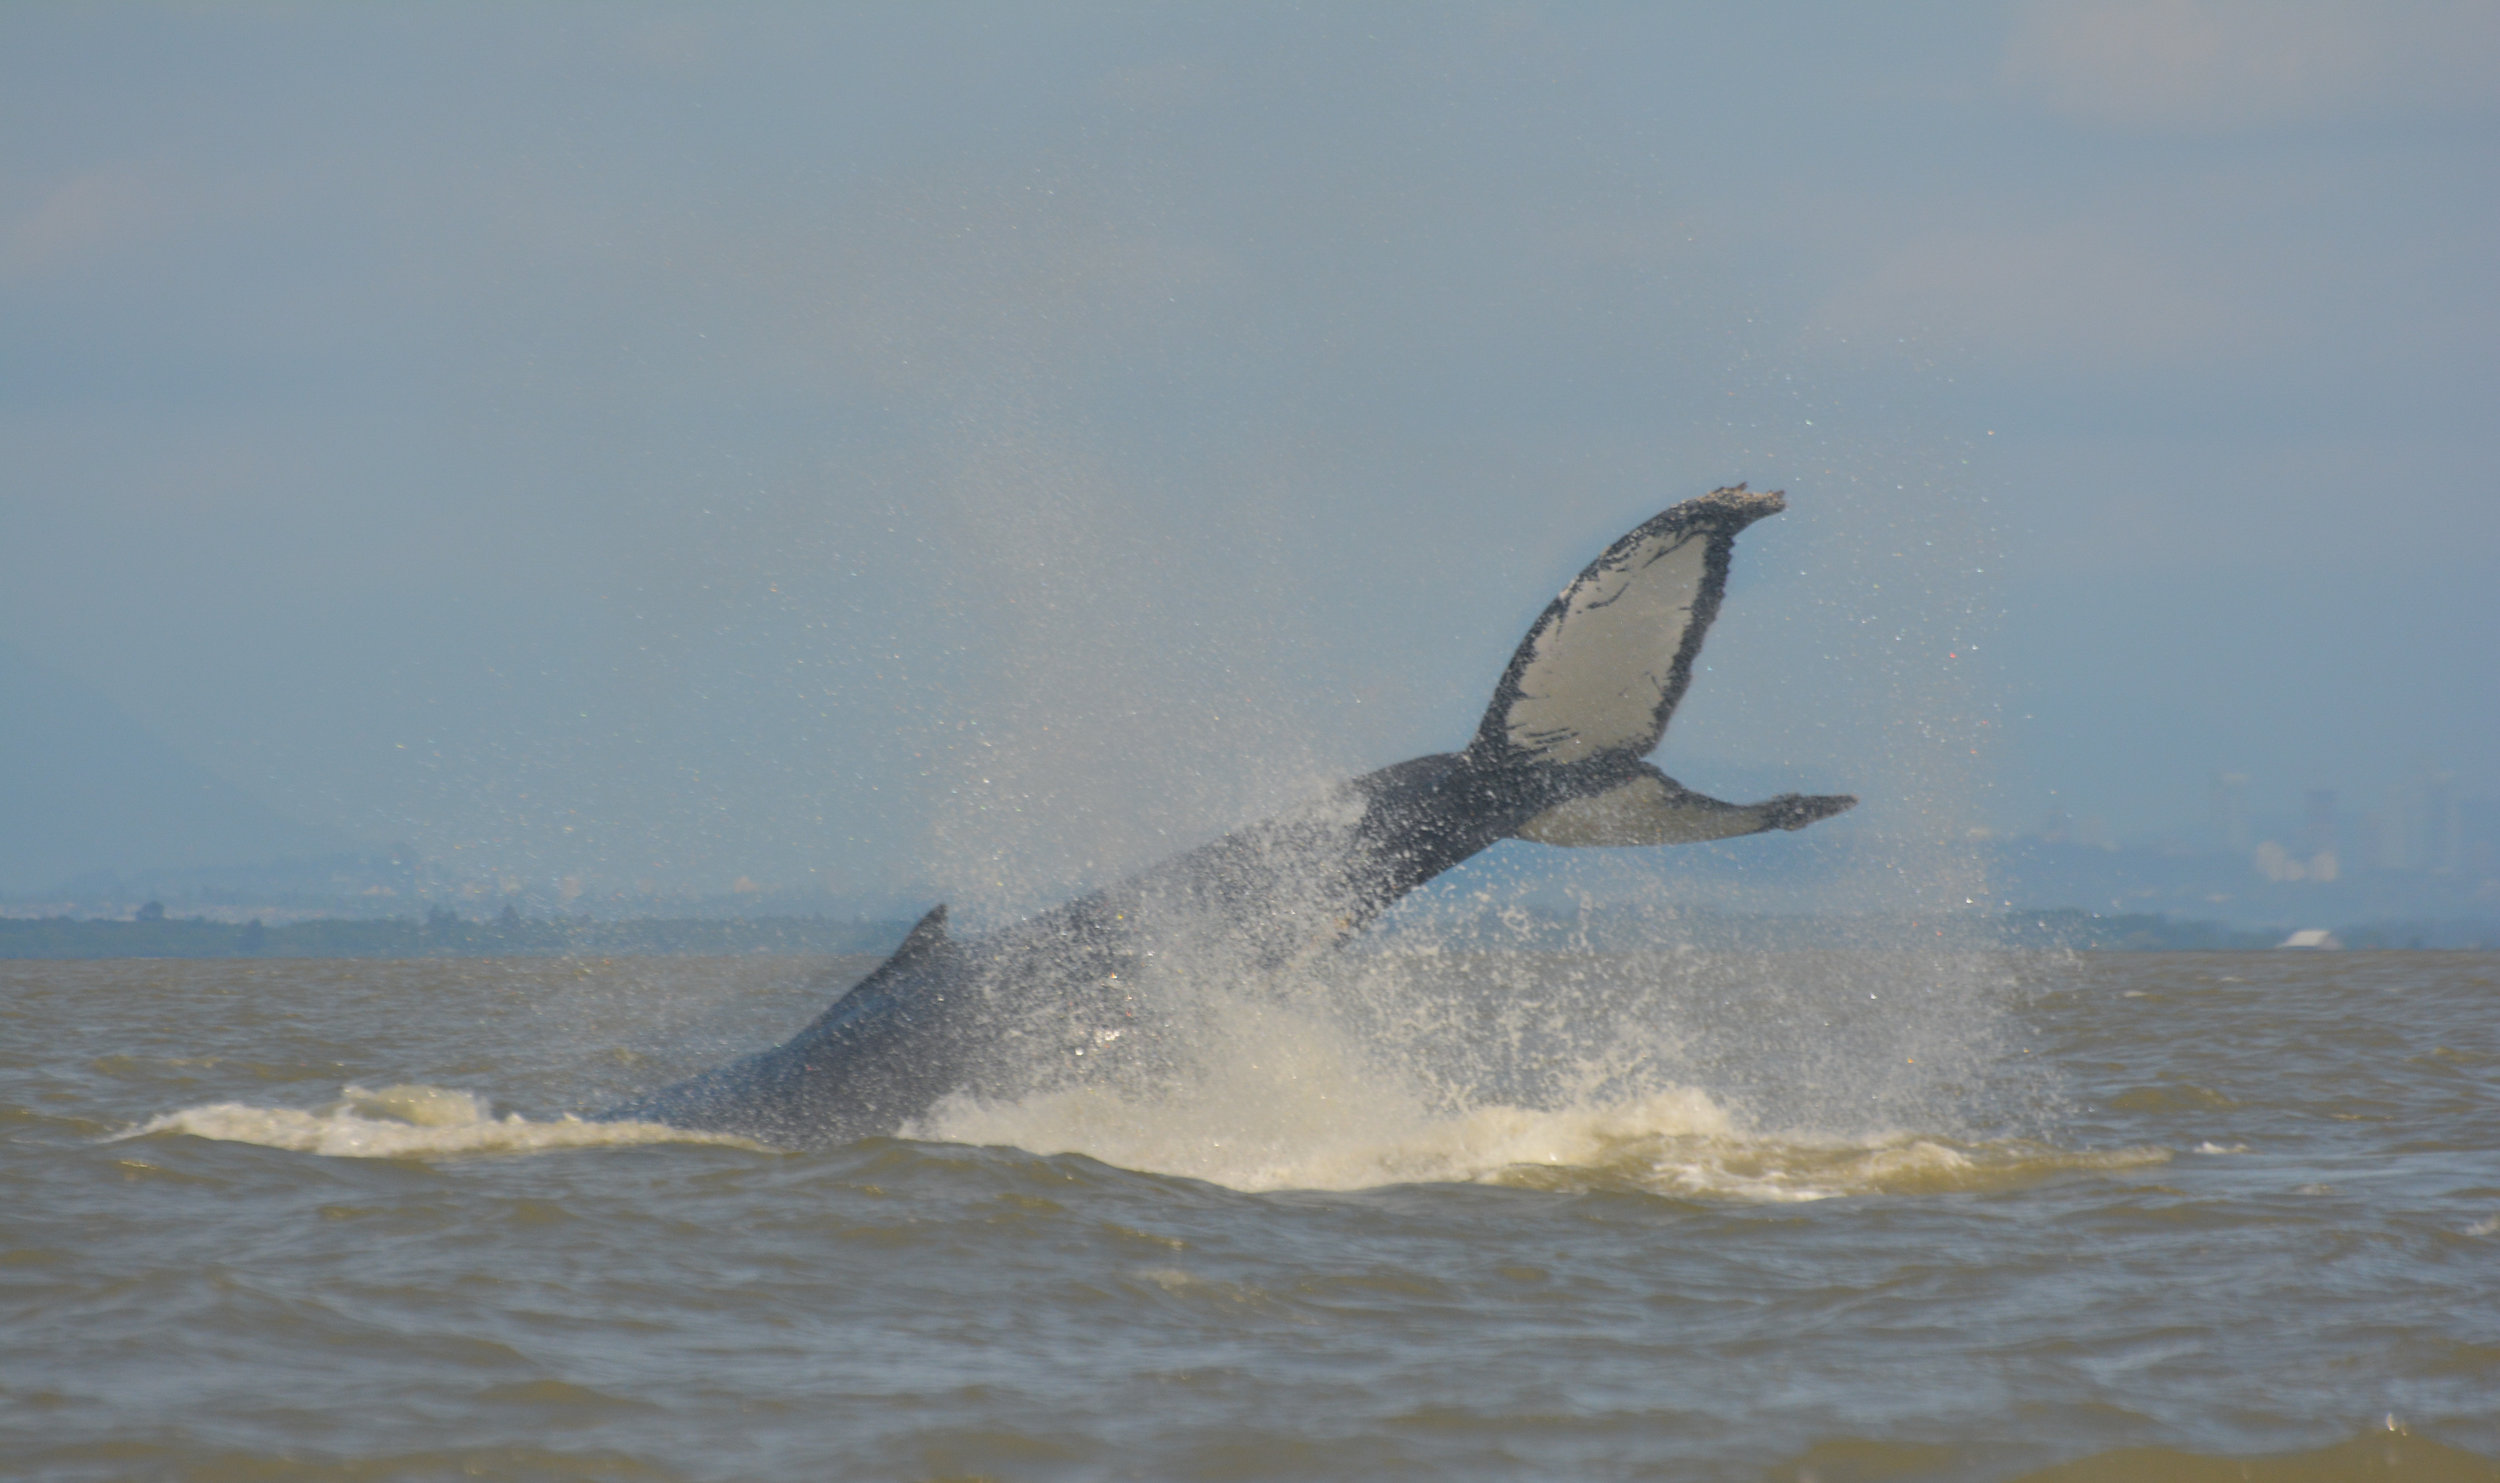 Having over 80% white on its fluke makes Anvil a BCZ whale. Photo by Kaitlyn Watson.